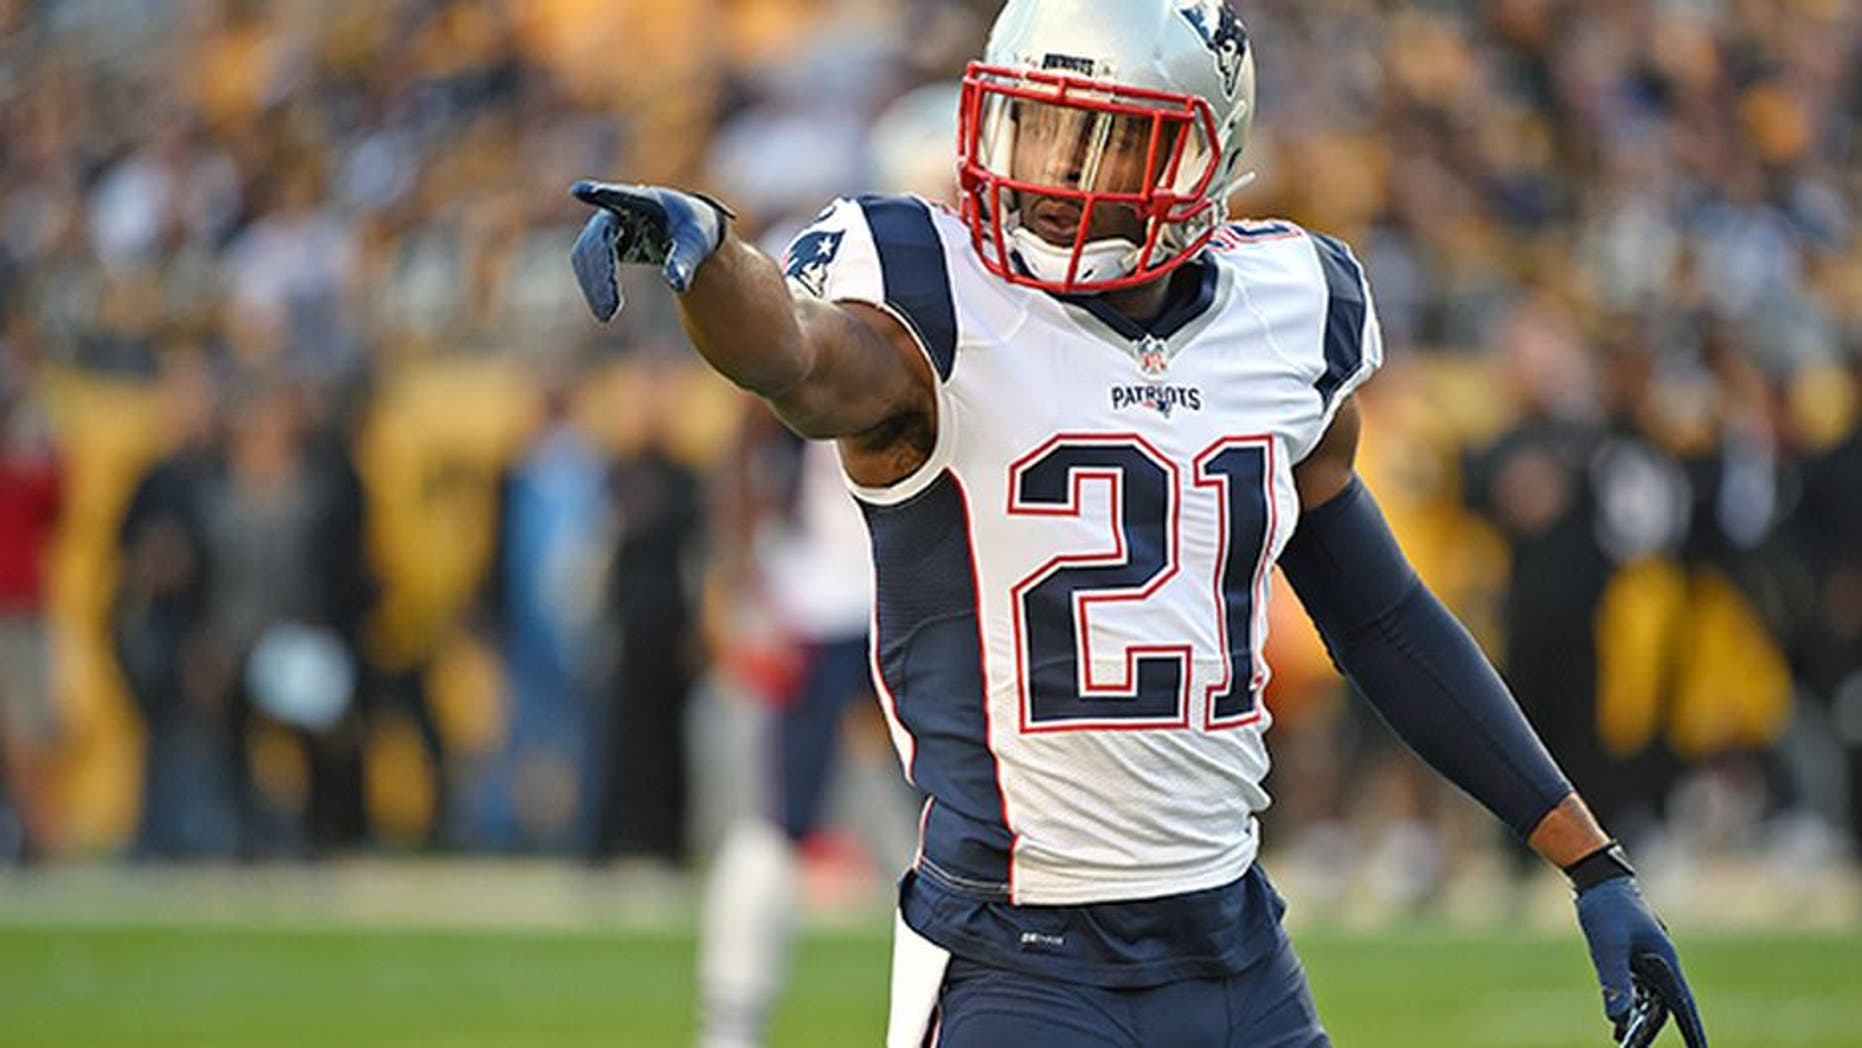 PITTSBURGH, PA - OCTOBER 23: Cornerback Malcolm Butler #21 of the New England Patriots signals during a game against the Pittsburgh Steelers at Heinz Field on October 23, 2016 in Pittsburgh, Pennsylvania. The Patriots defeated the Steelers 27-16. (Photo by George Gojkovich/Getty Images)